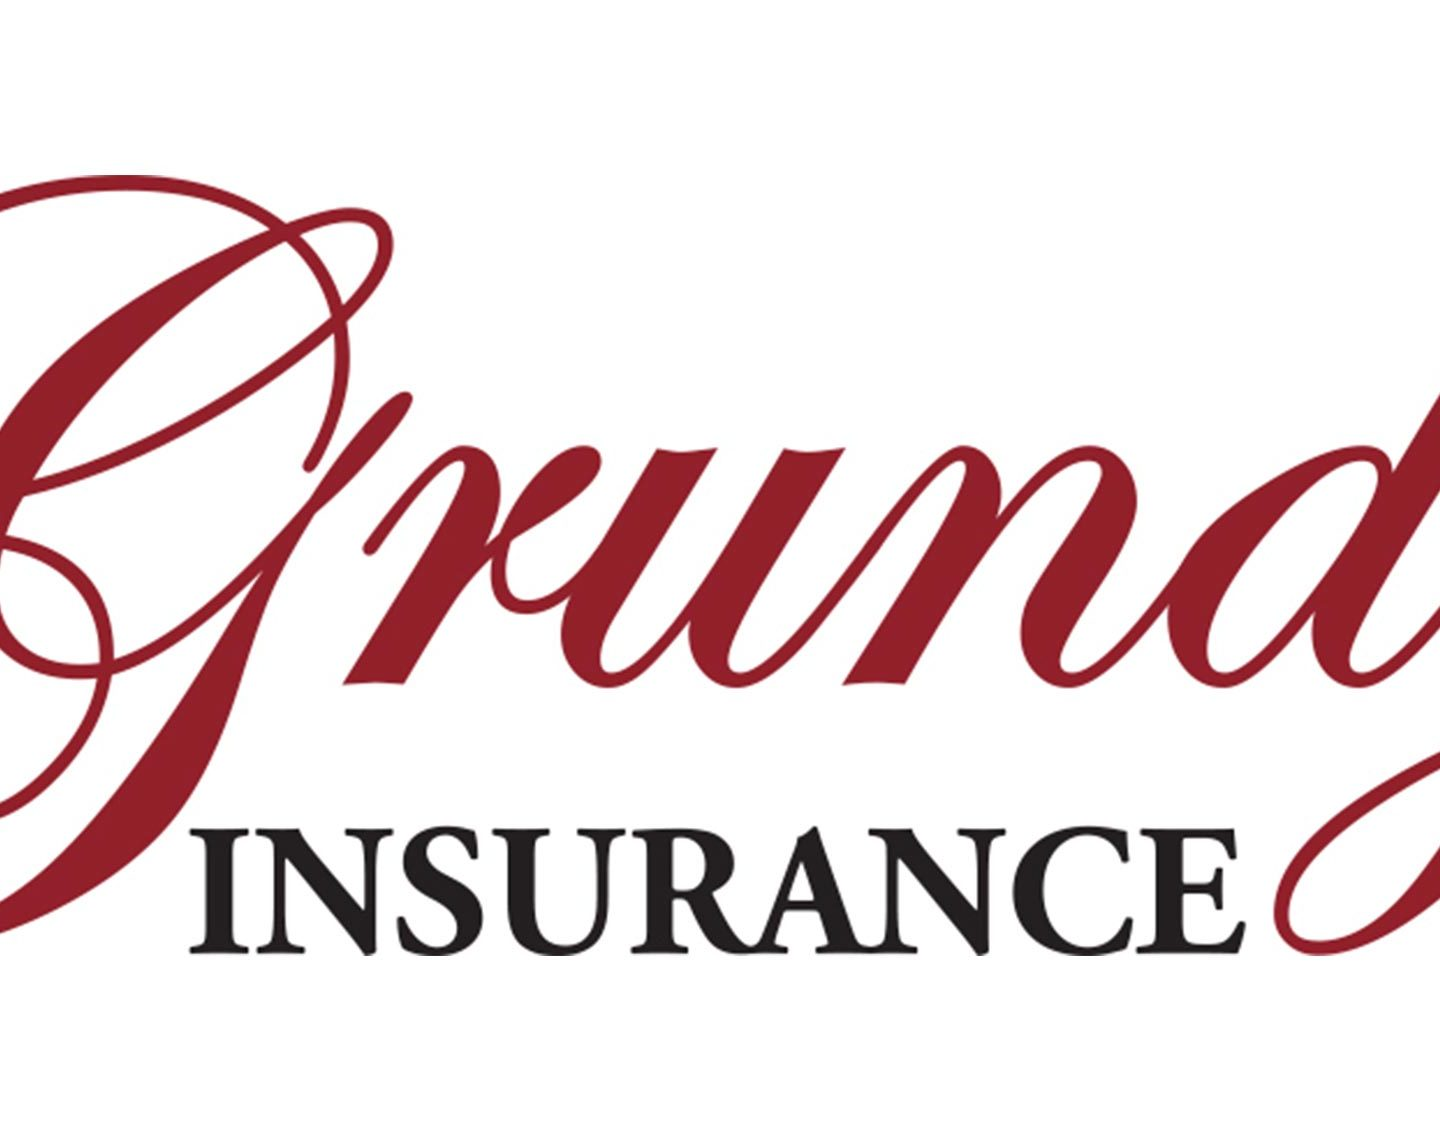 Beware of Grundy Insurance